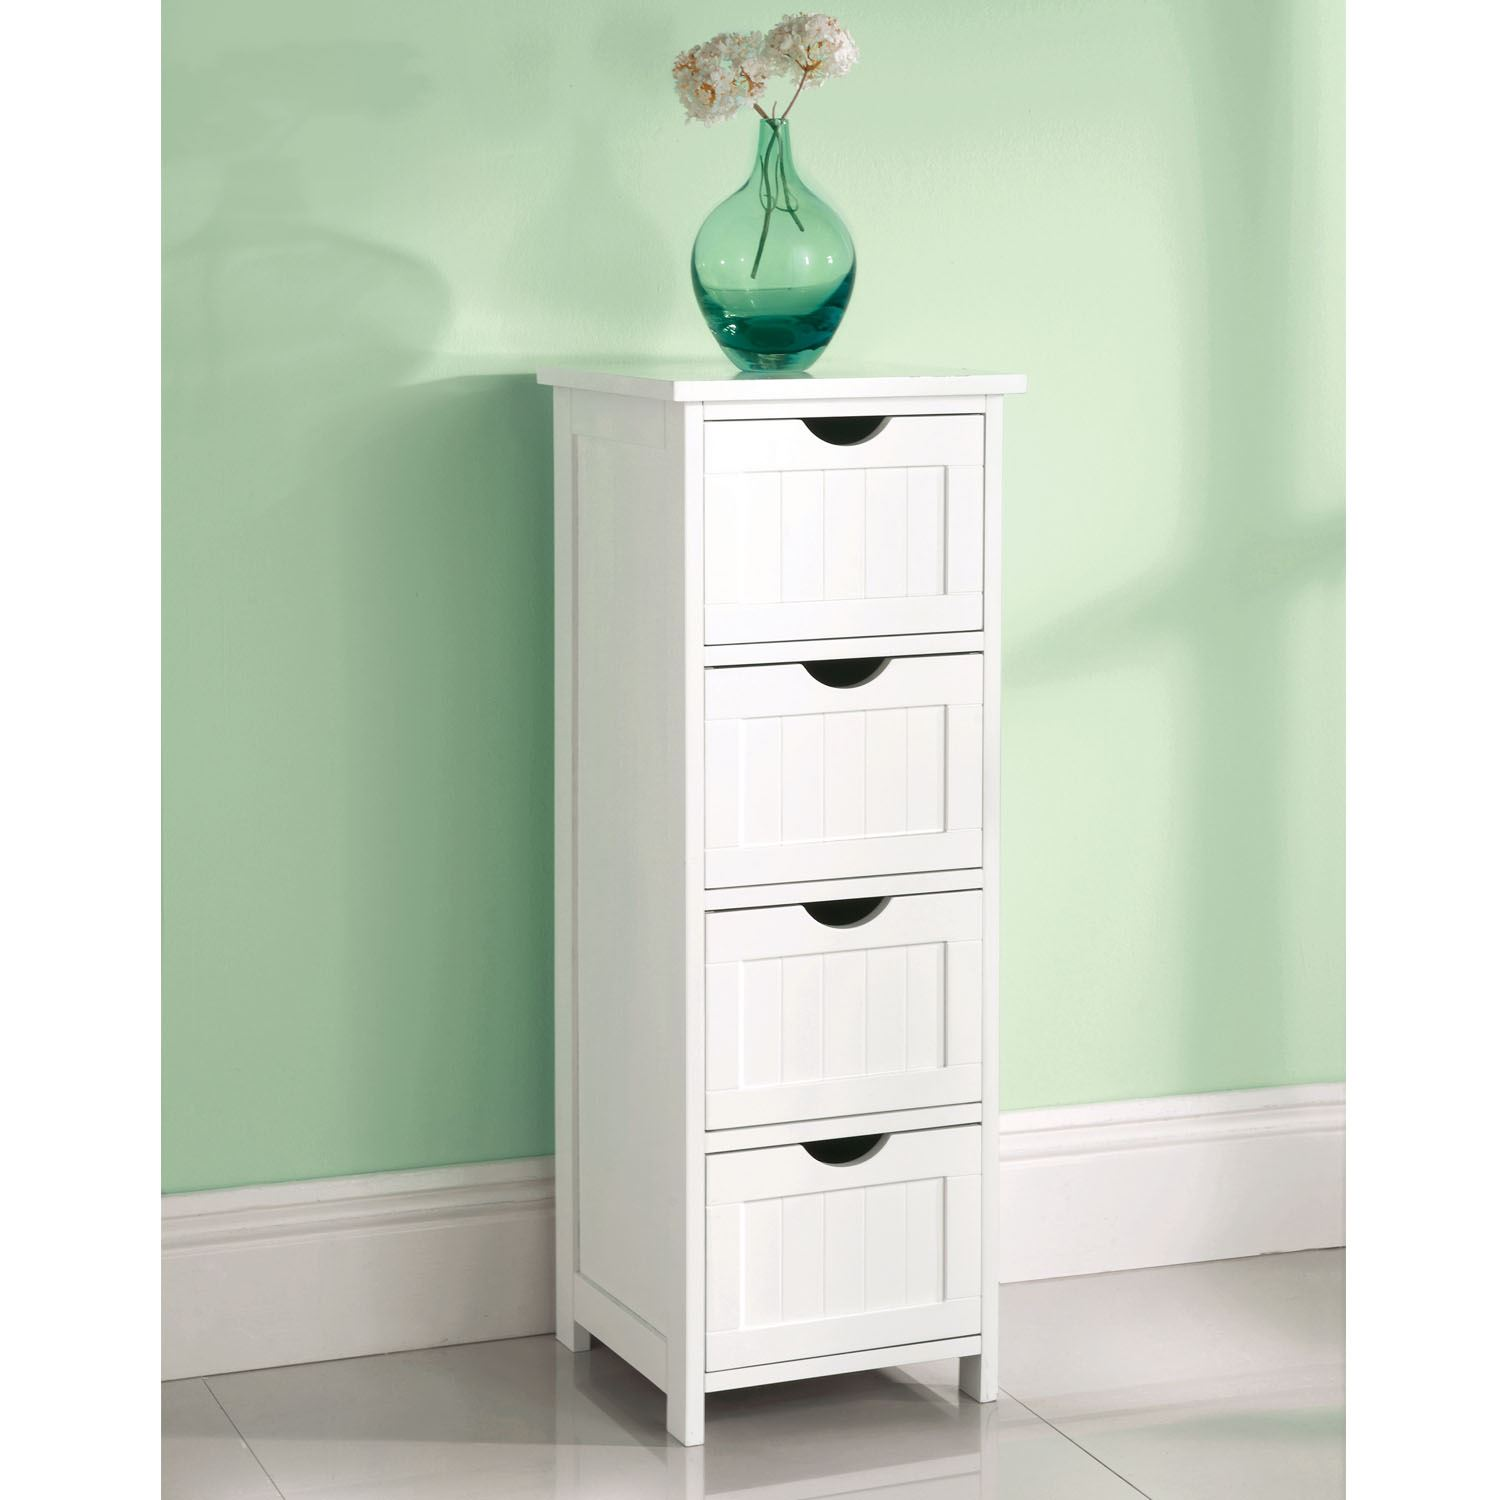 Top Home Solutions 4 Drawer White Wooden Bathroom Cabinet Cupboard ...